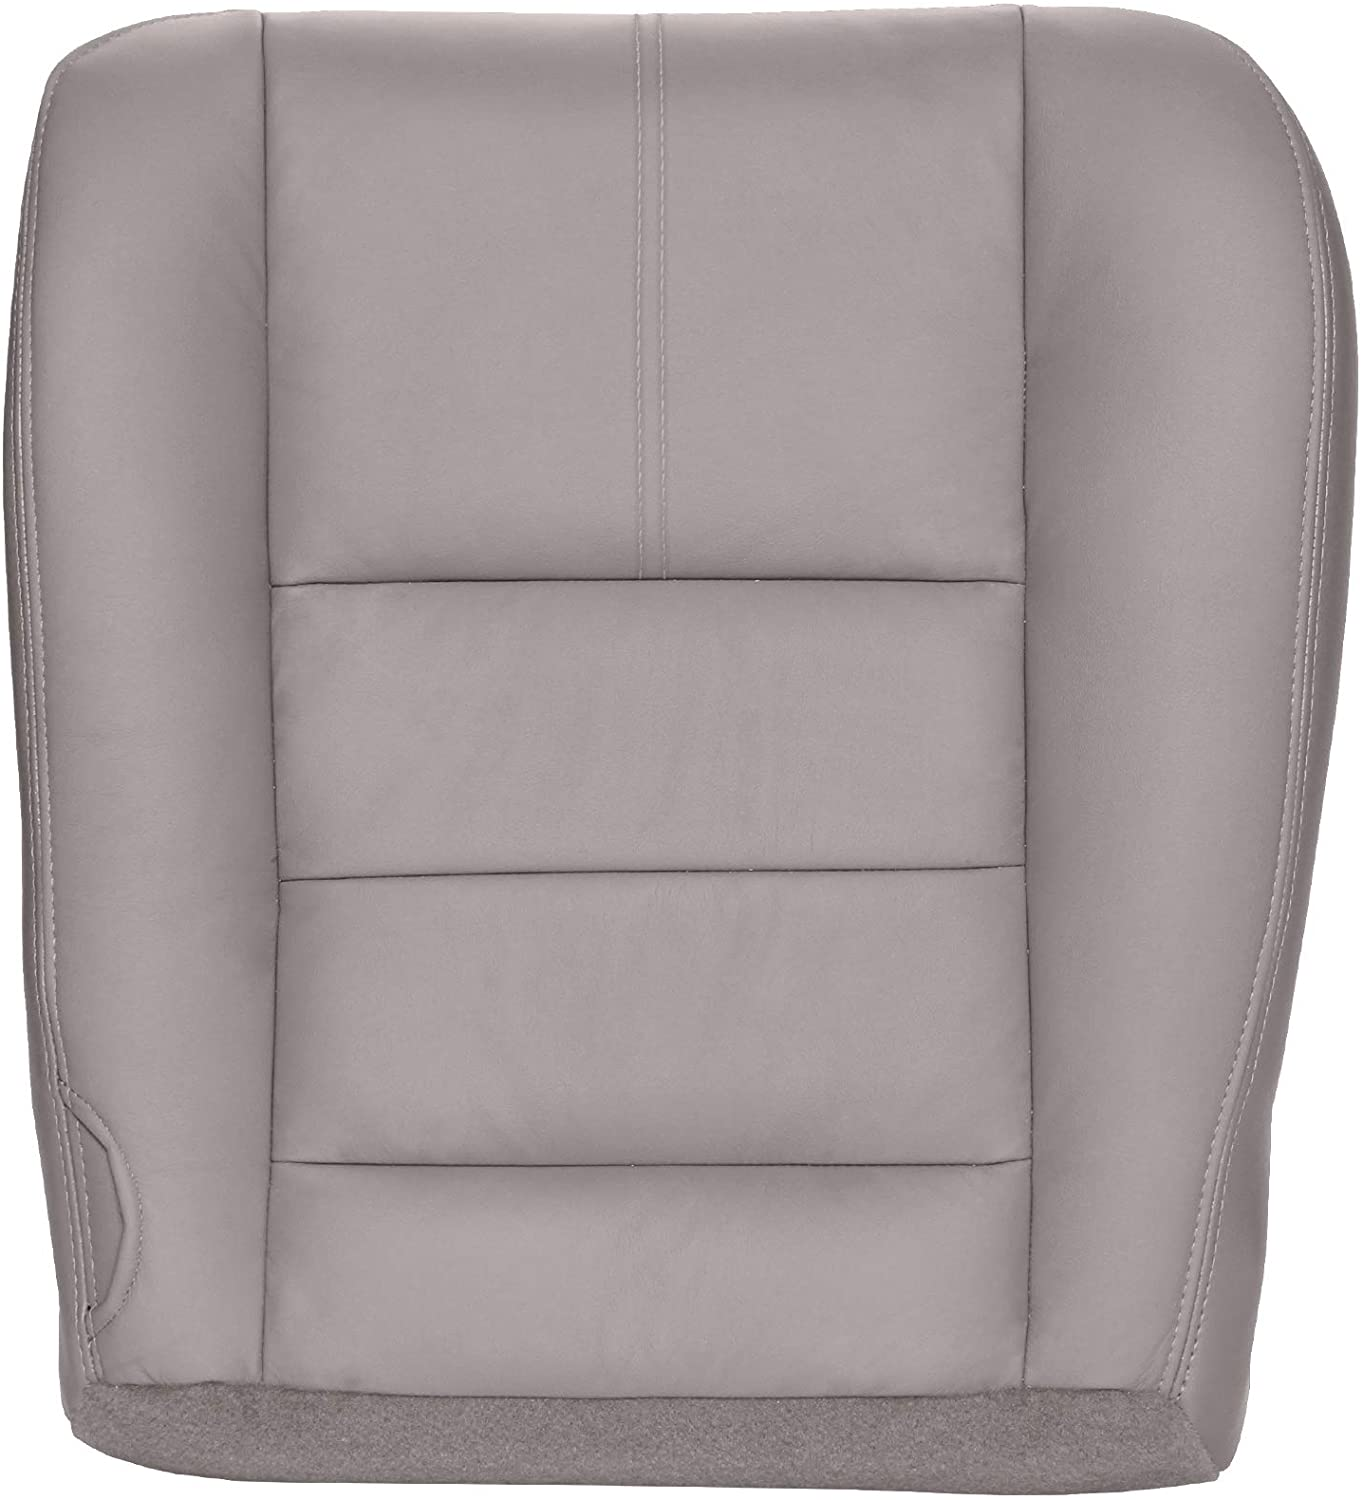 The Seat Shop Passenger Bottom Replacement Leather Seat Cover - Medium Stone Gray (Compatible with 2008-2010 Ford F250 and F350 Super Duty Lariat and XLT)